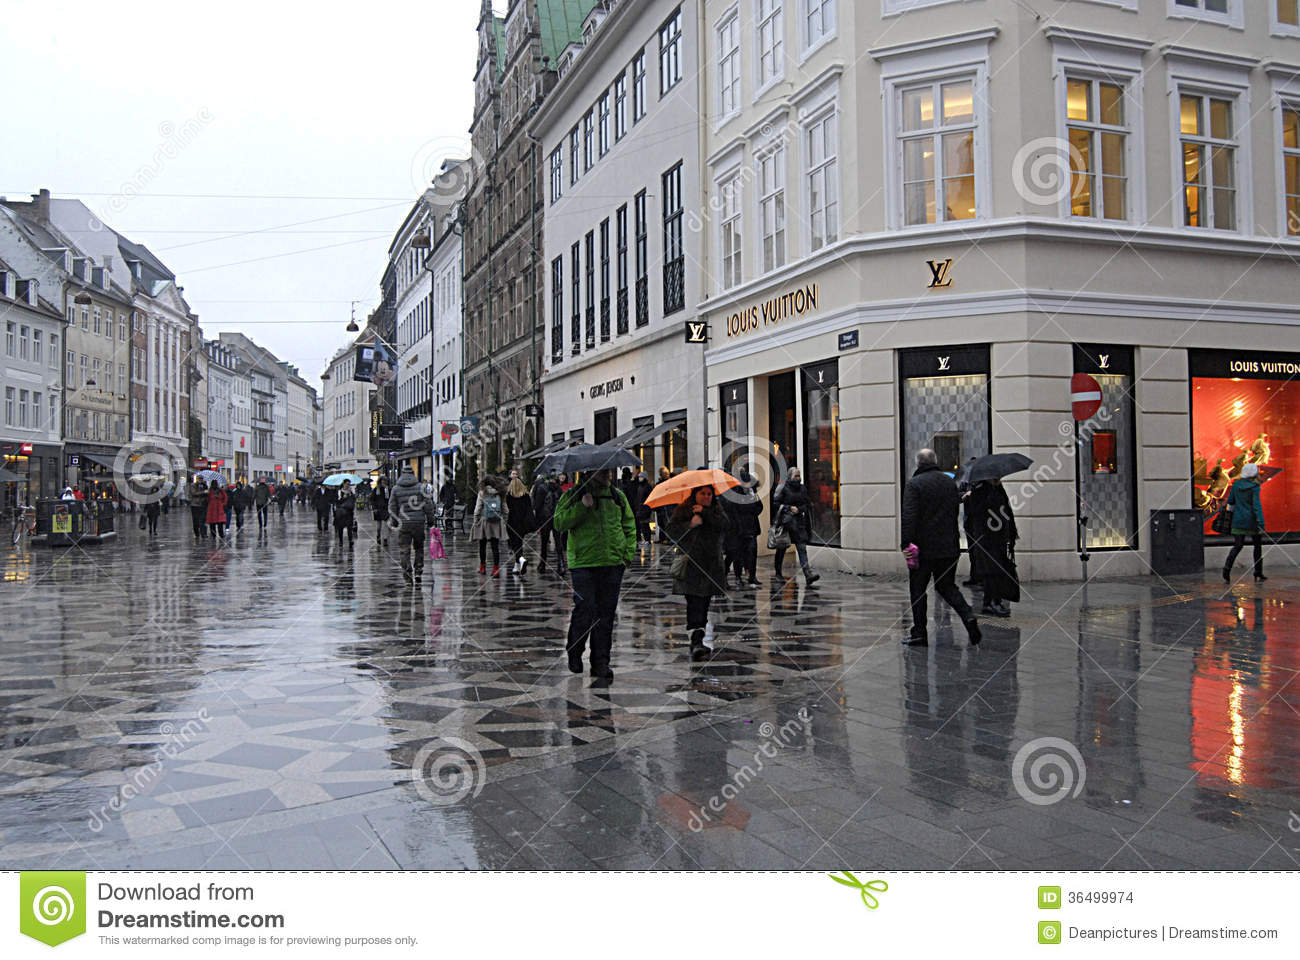 DENMARK_TRAVELERS IN SHOPPER IN RAINY WEATHER Editorial Stock Image - Image: 36499974